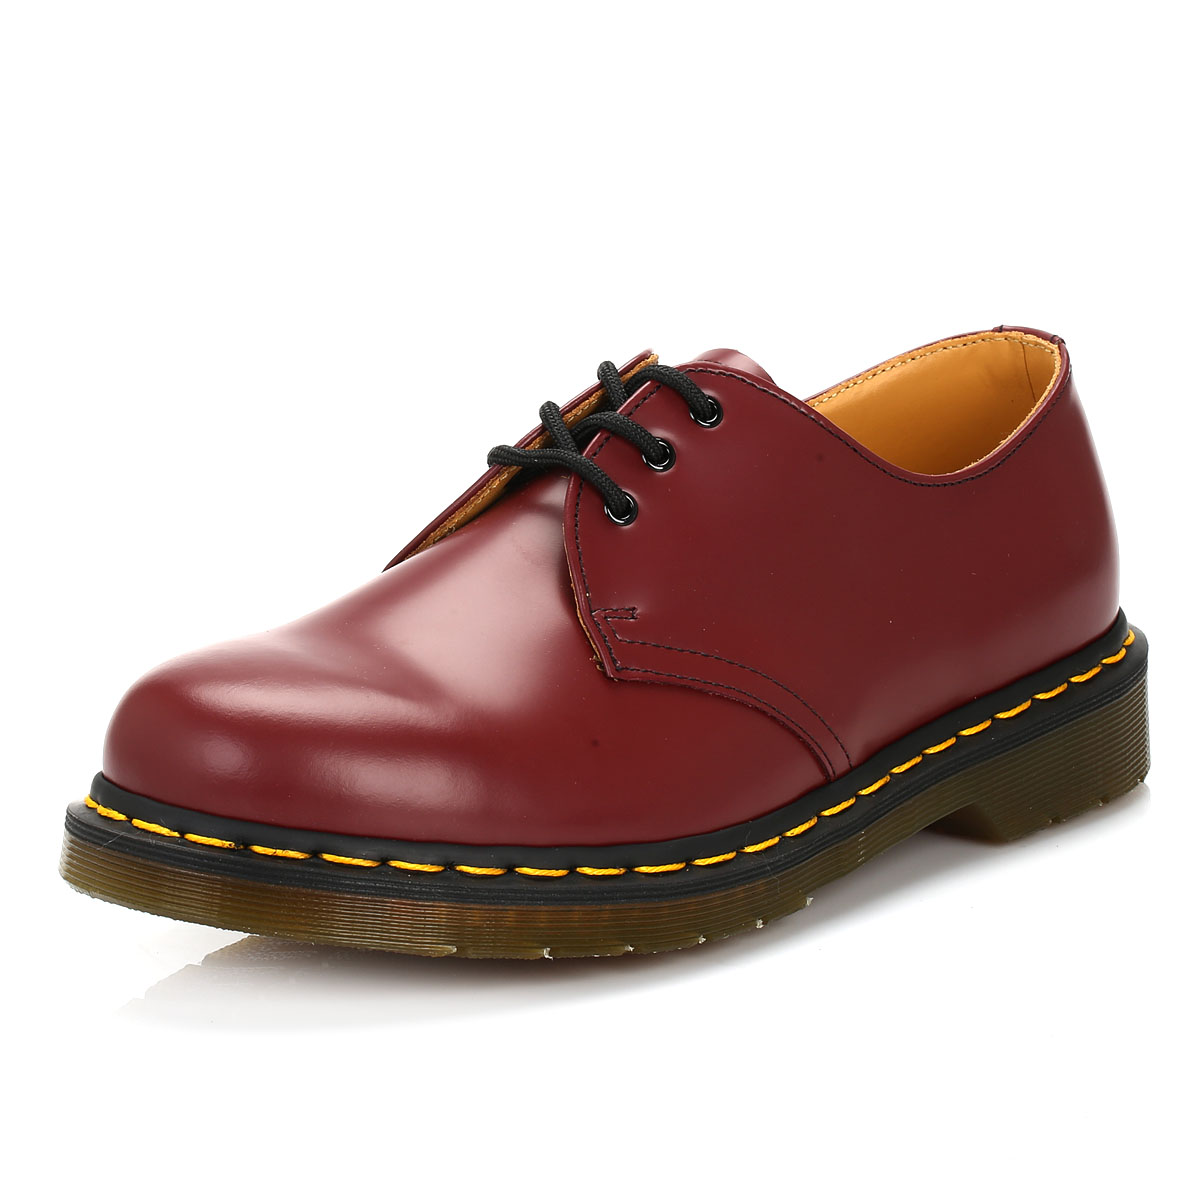 Dr. Martens Unisex Cherry Red Shoes, Leather Docs, Smart Casual | eBay